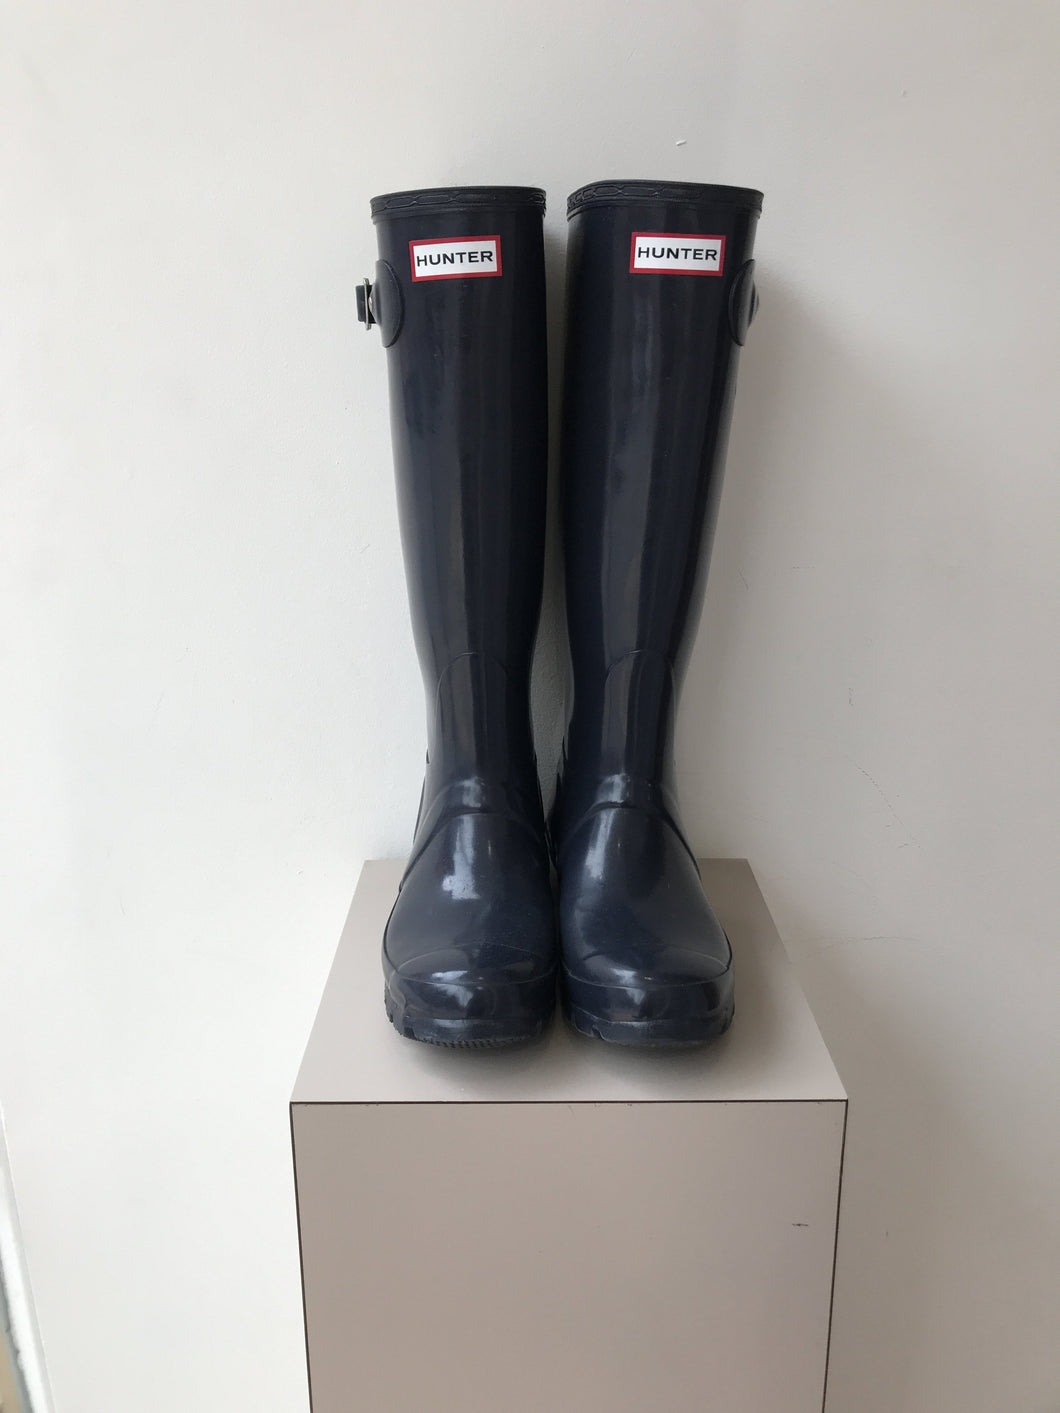 Hunter navy shiny classic rain boots size 6 - My Girlfriend's Wardrobe York Pa